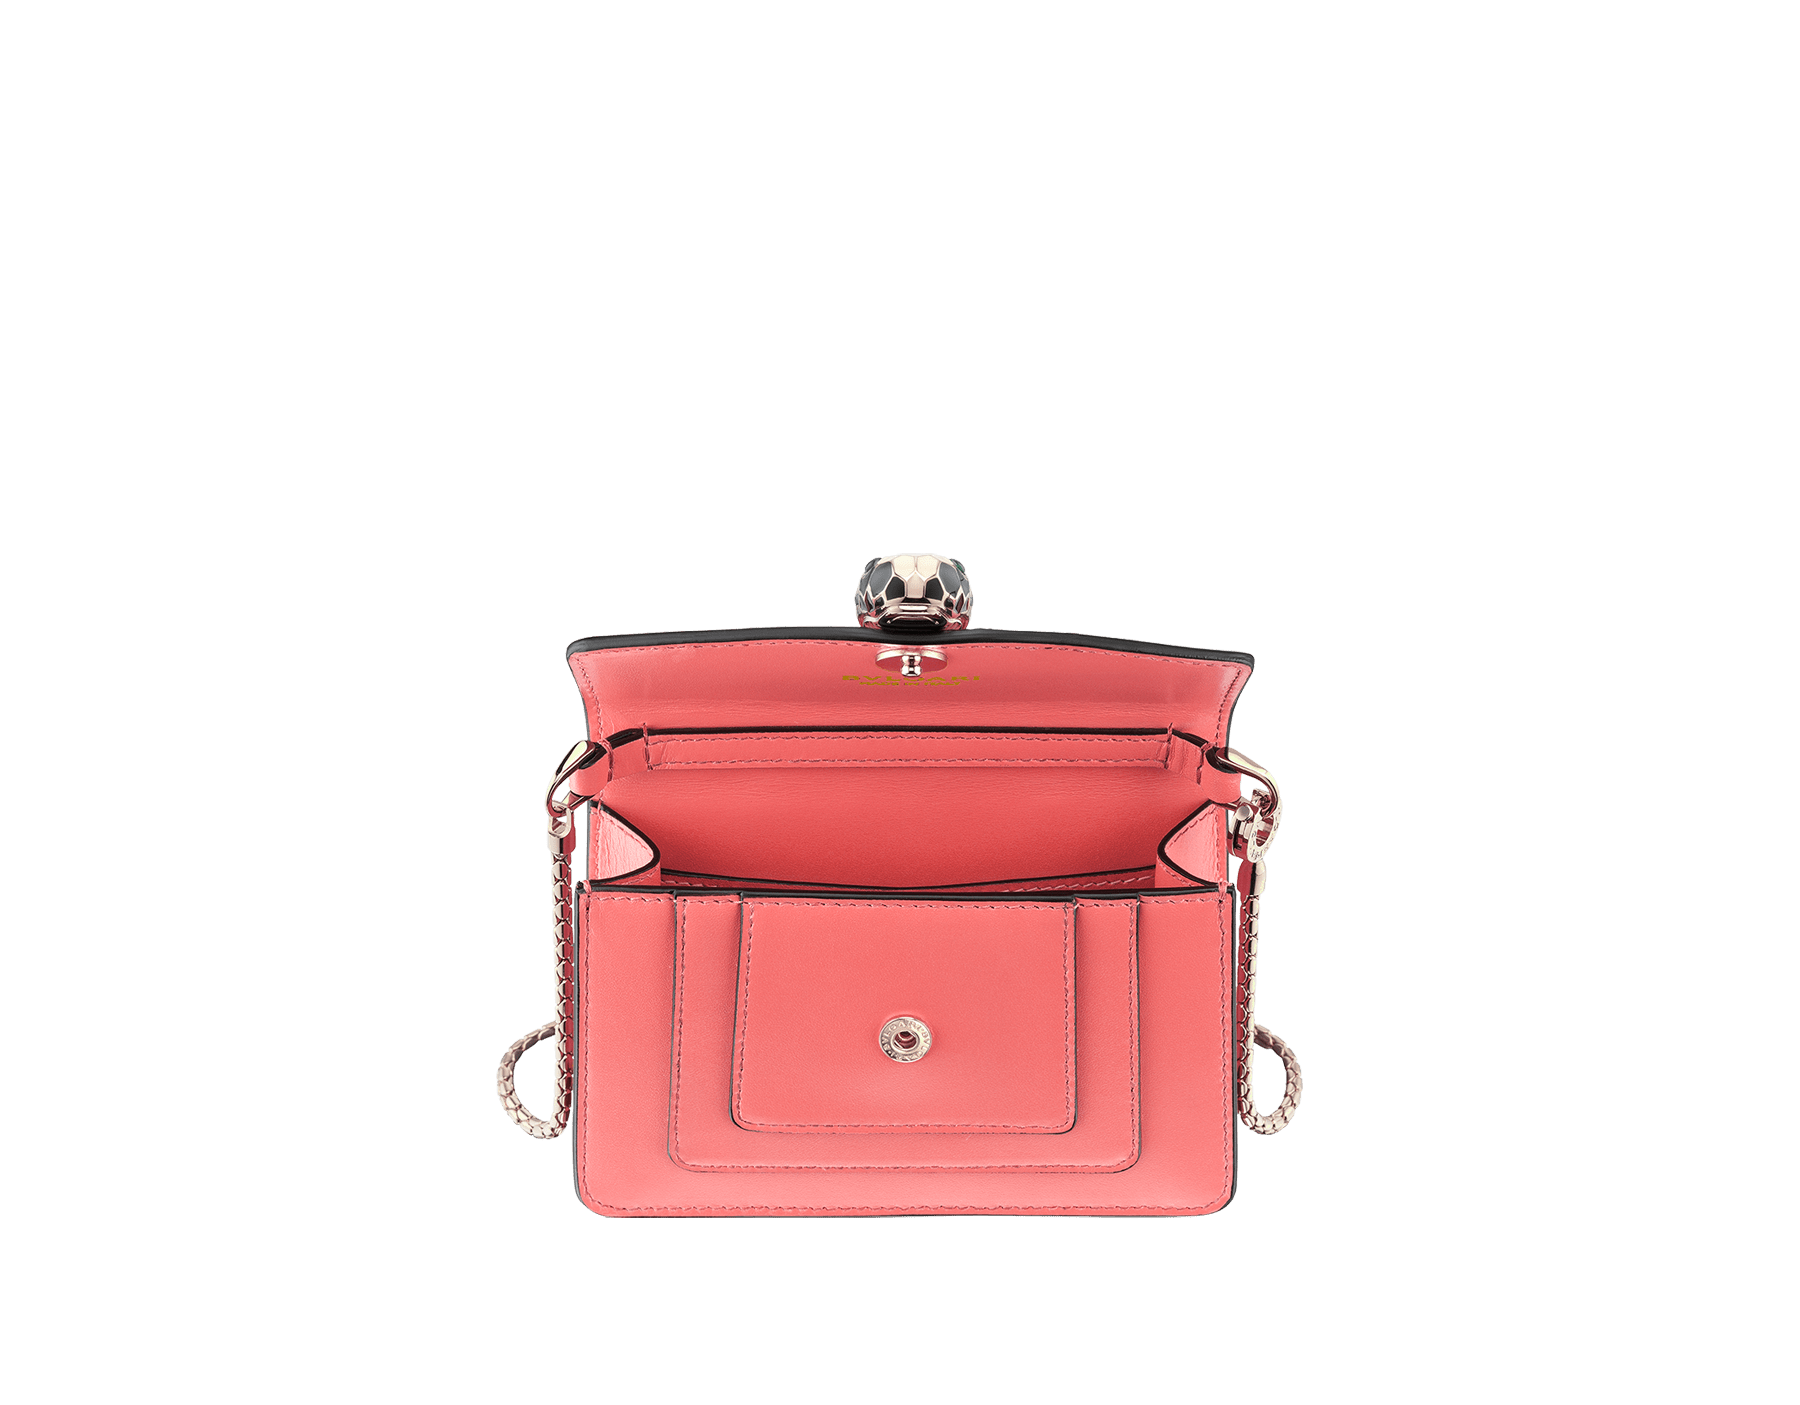 Bag charm Serpenti Forever miniature in silky coral and flamingo quartz nappa lining. Iconic brass light gold plated snakehead stud closure enameled in black and white agate and finished with green enamel eyes. 289256 image 2